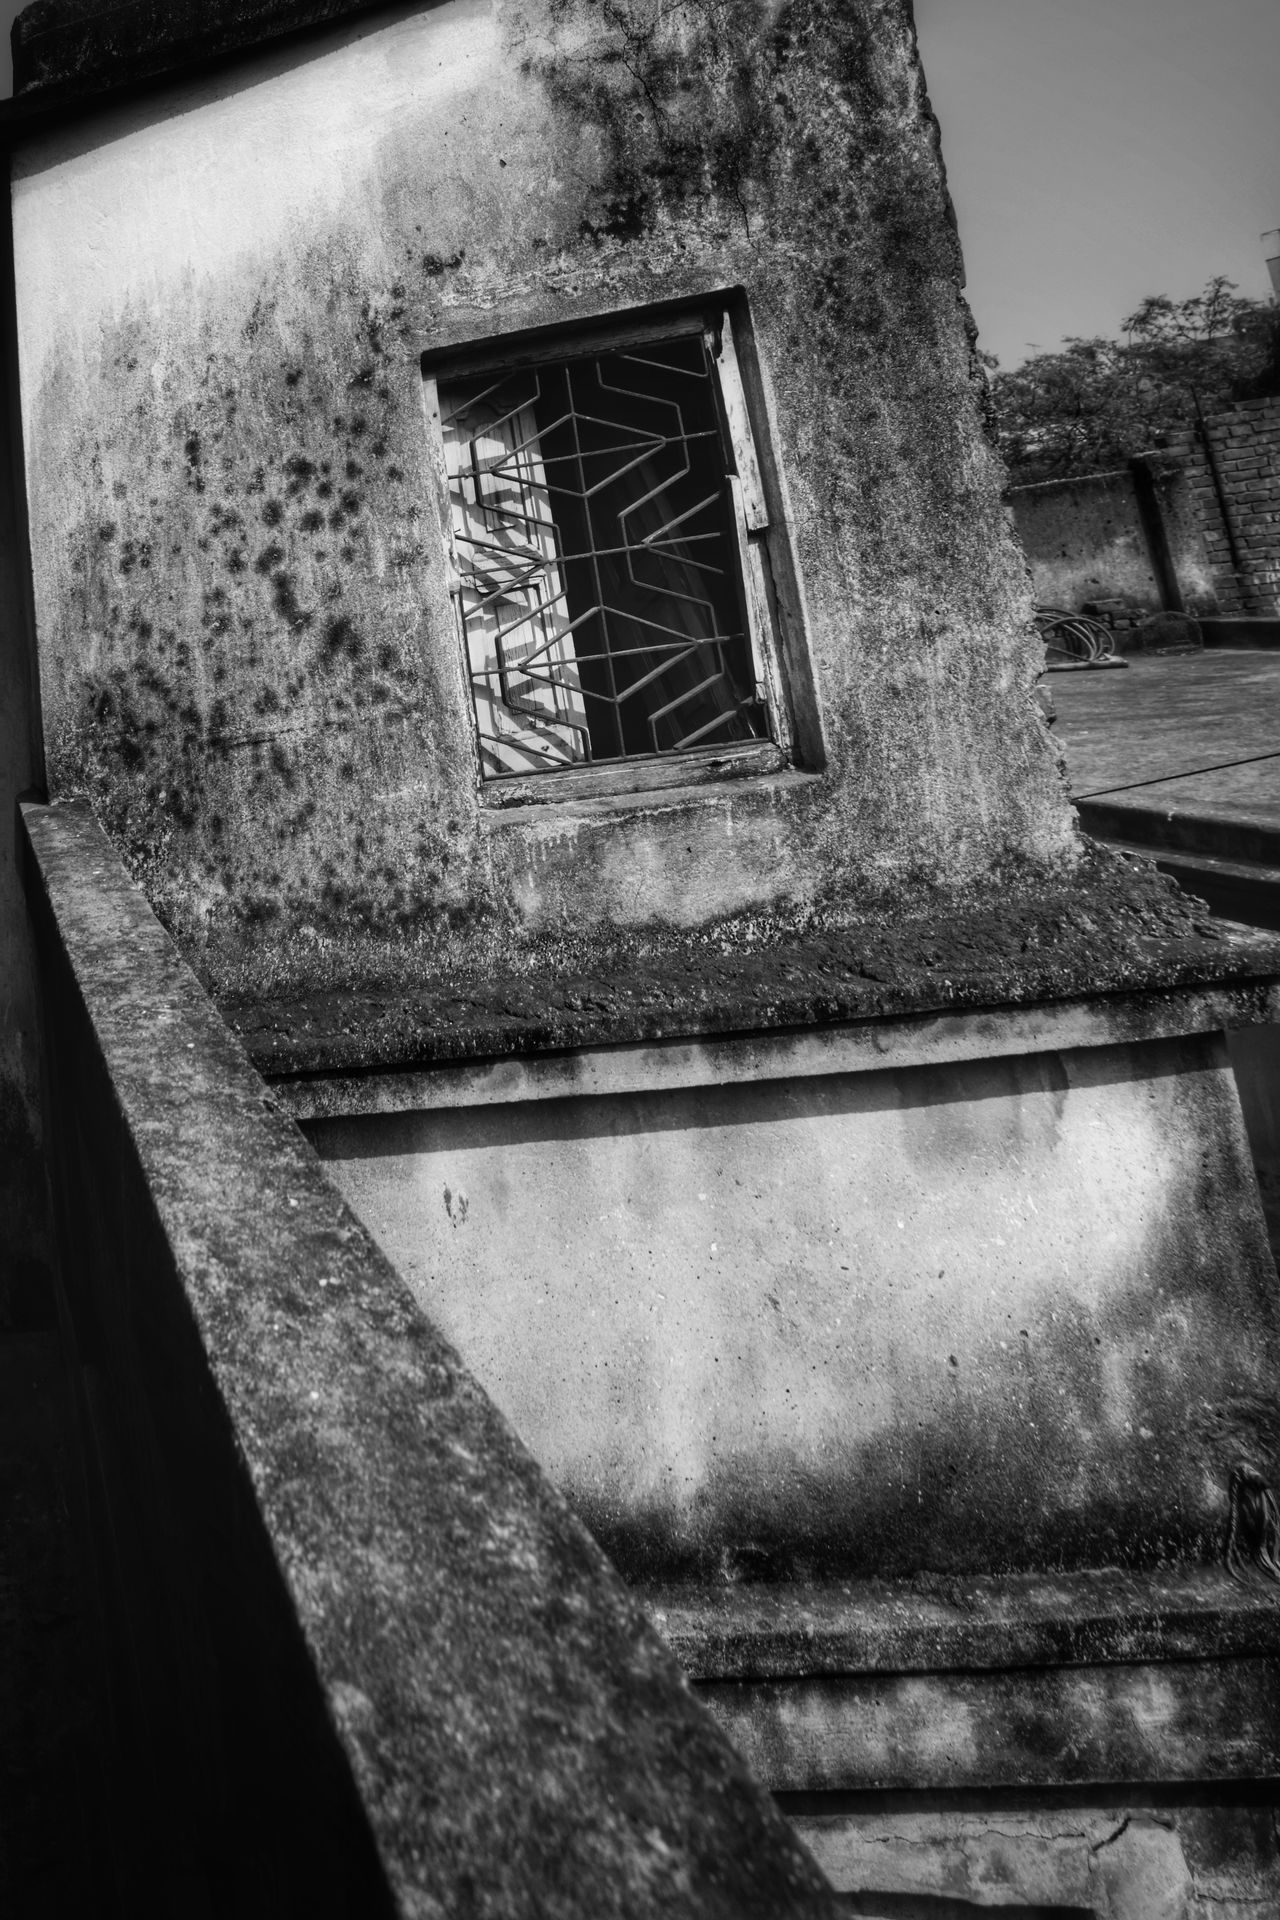 Built Structure Window Architecture Building Exterior Day No People Outdoors Tree Close-up Lifestyles Indoors  Cityscape House Door Arts Culture And Entertainment Travel Destinations Atmospheric Mood Sunlight Tranquility The Way Forward Fresco Full Length Horizontal City Architecture And Art